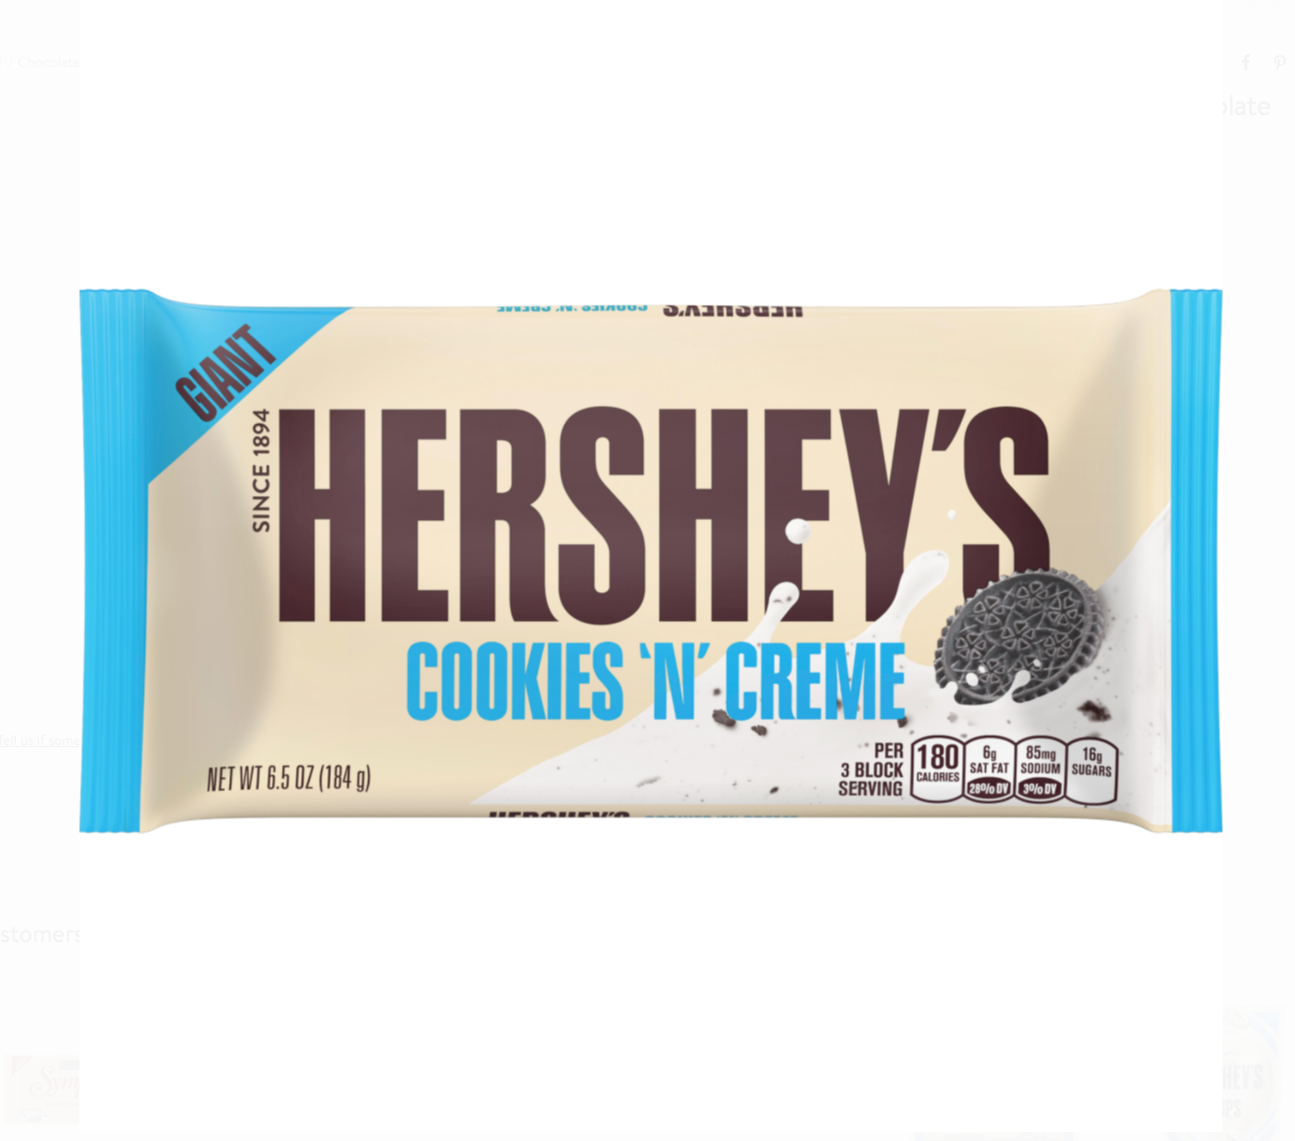 Hershey's Cookies 'N' Creme Giant Candy Bar, 6.5oz